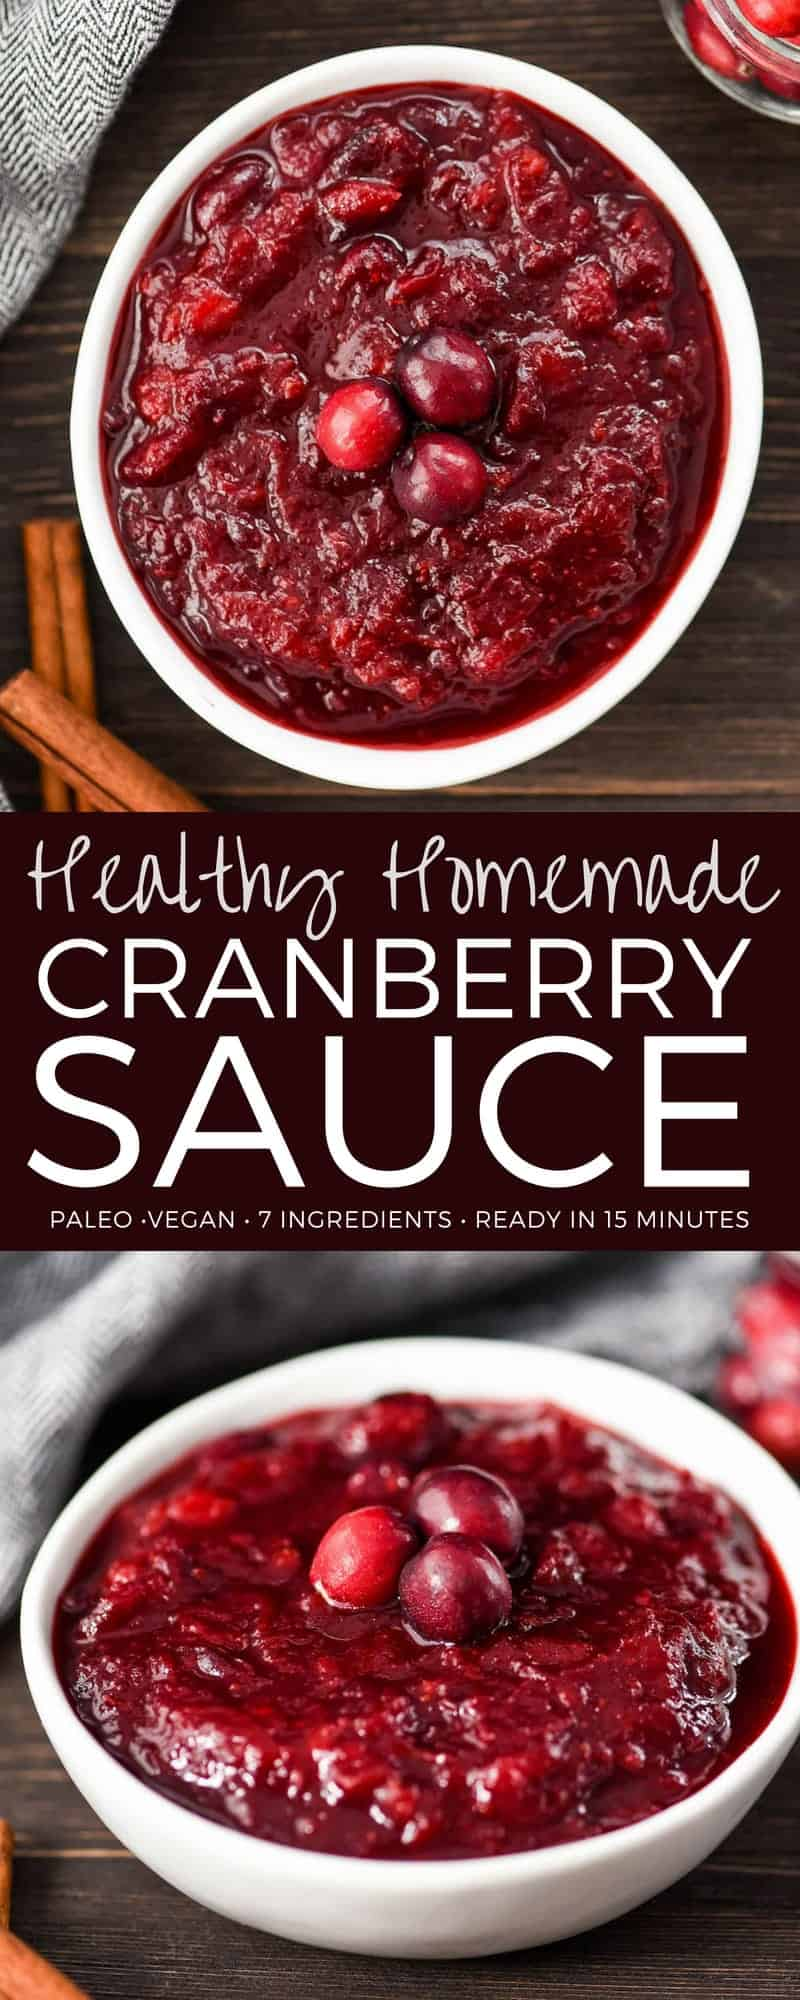 This Homemade Healthy Cranberry Sauce Recipe has only 7 ingredients, is ready in 15 minutes and has NO refined sugar! Using apple cider and orange juice gives it a rich & spicy yet bright and citrusy flavor that is out-of-this-world delicious! Gluten-free, vegan, dairy-free & paleo-friendly! #homemade #cranberrysauce #healthycranberrysauce #thanksgiving #christmas #paleo #vegan